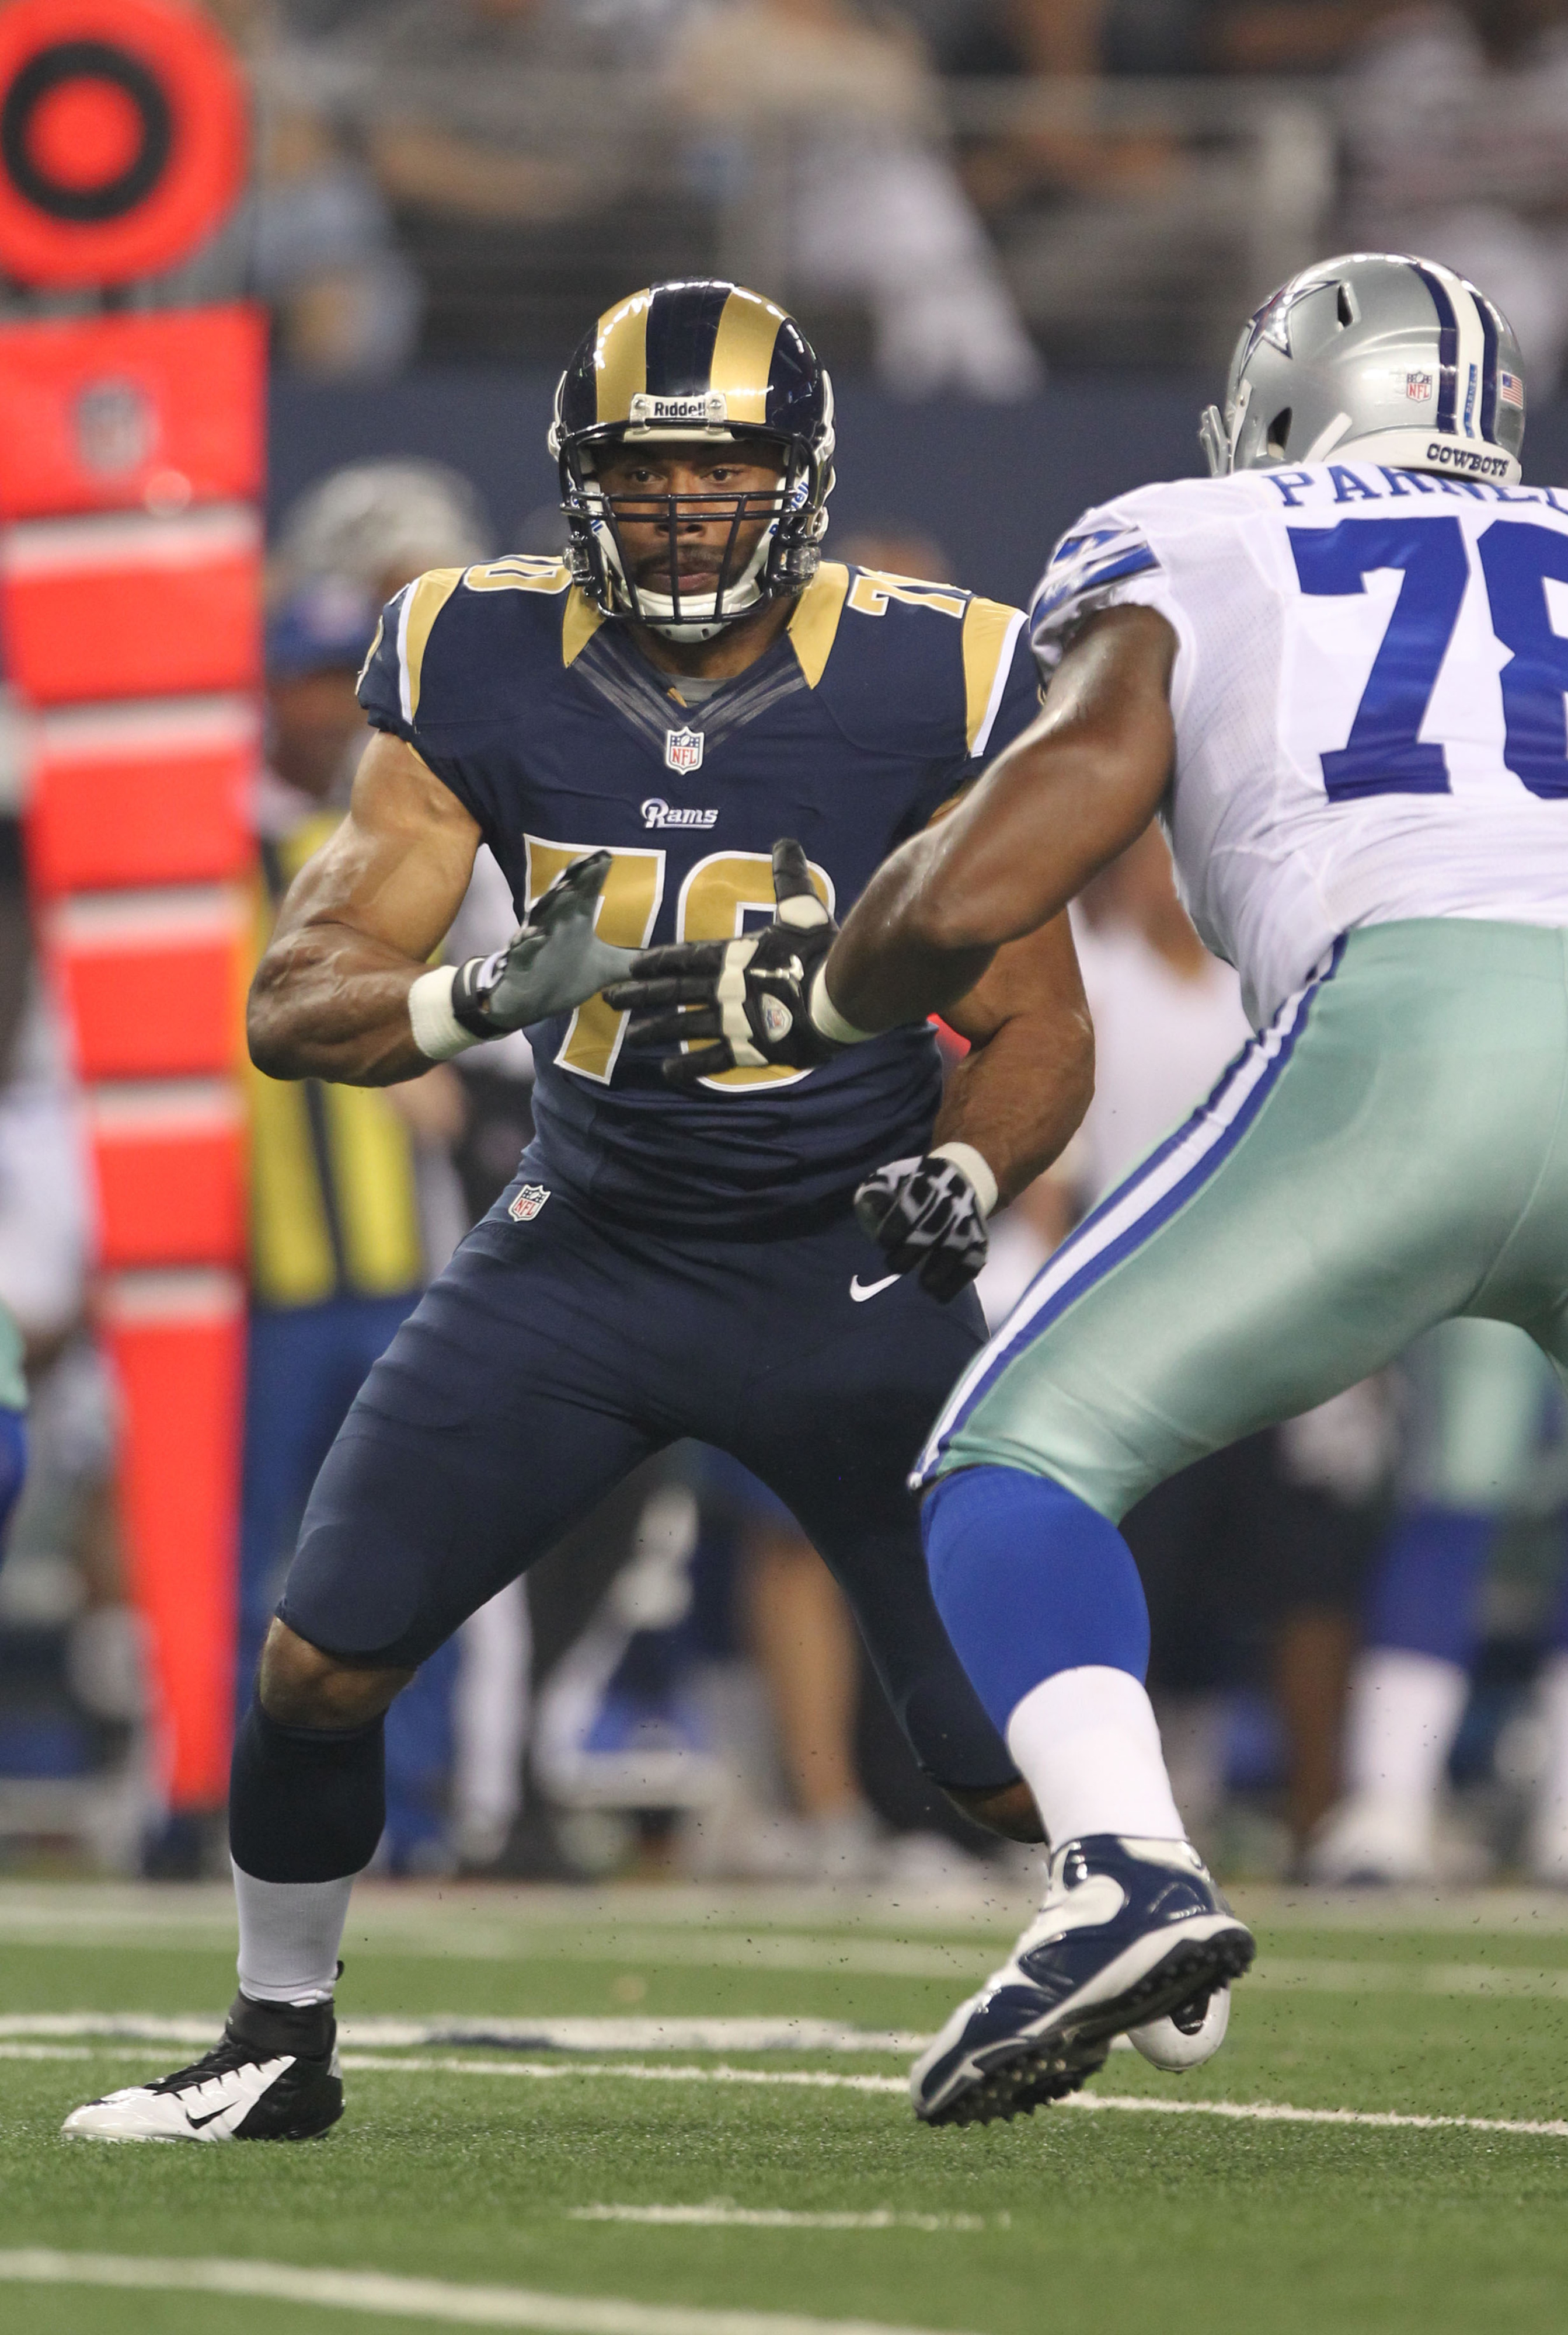 Aug 25, 2012; Arlington, TX, USA; St Louis Rams defensive end Vernon Gholston (70) in action in the second half against the Dallas Cowboys at Cowboys Stadium. Mandatory Credit: Matthew Emmons-US PRESSWIRE